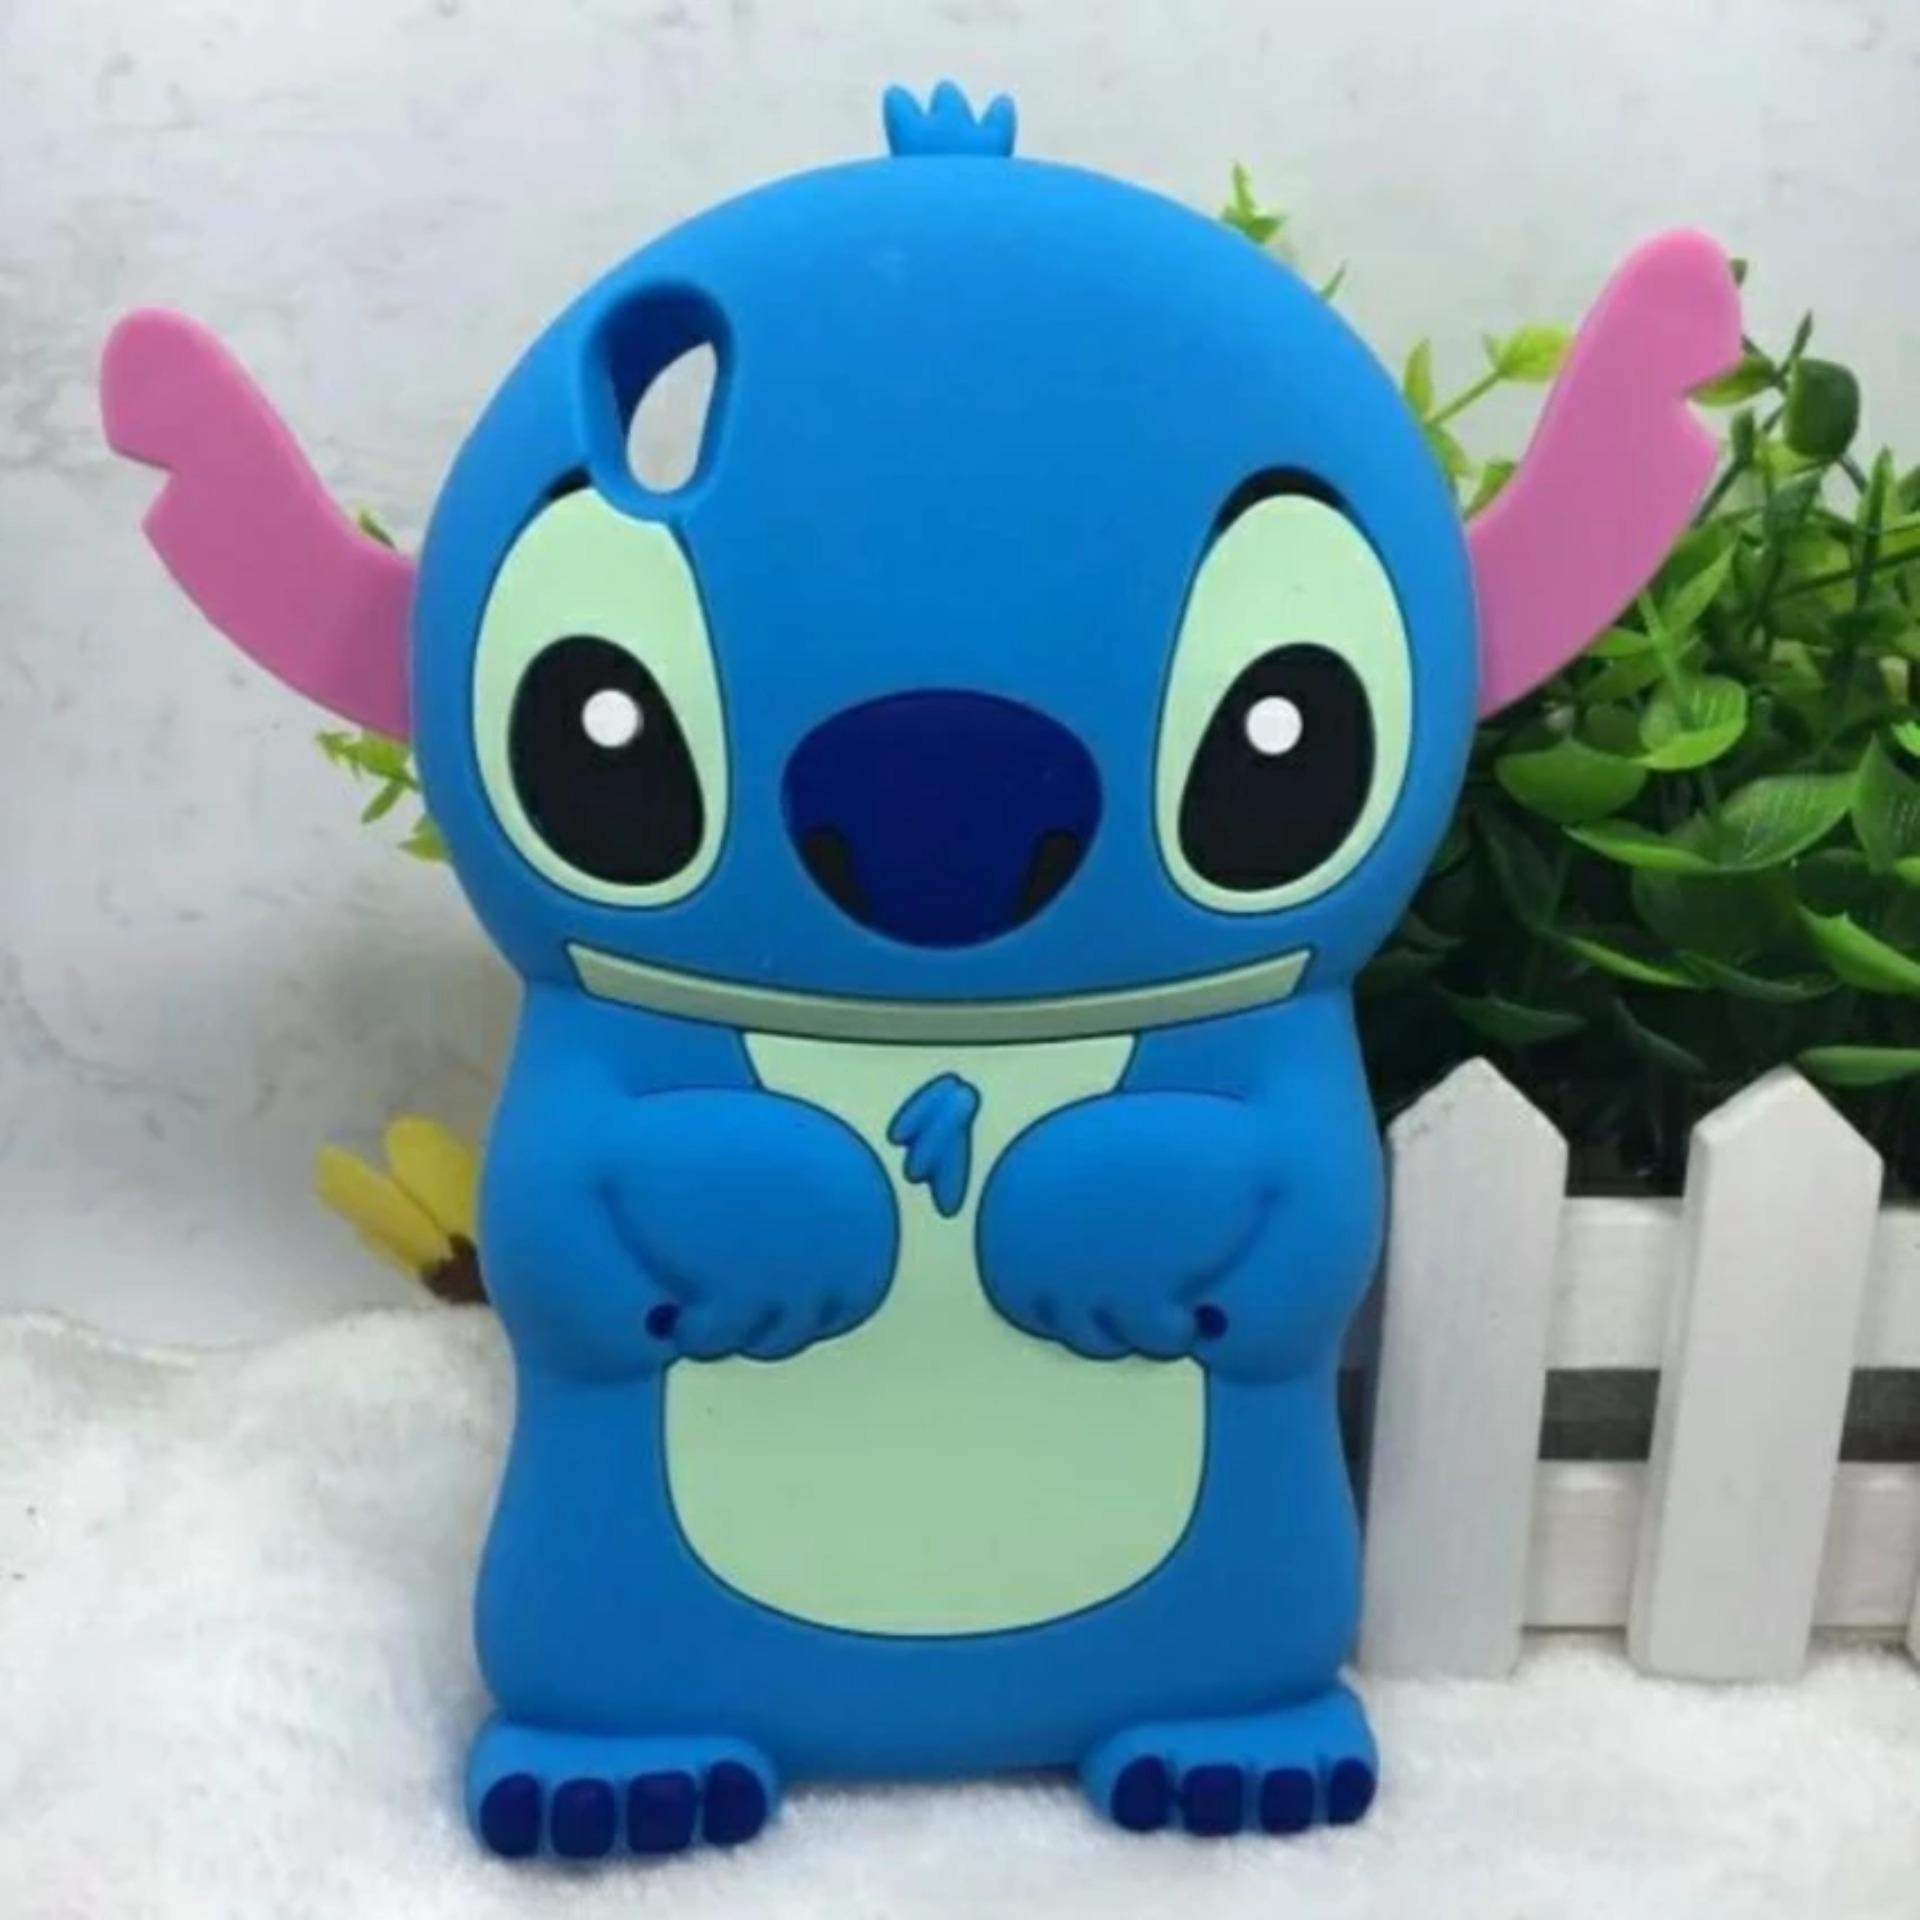 Download 670 Gambar Animasi Kartun Stitch HD Paling Baru